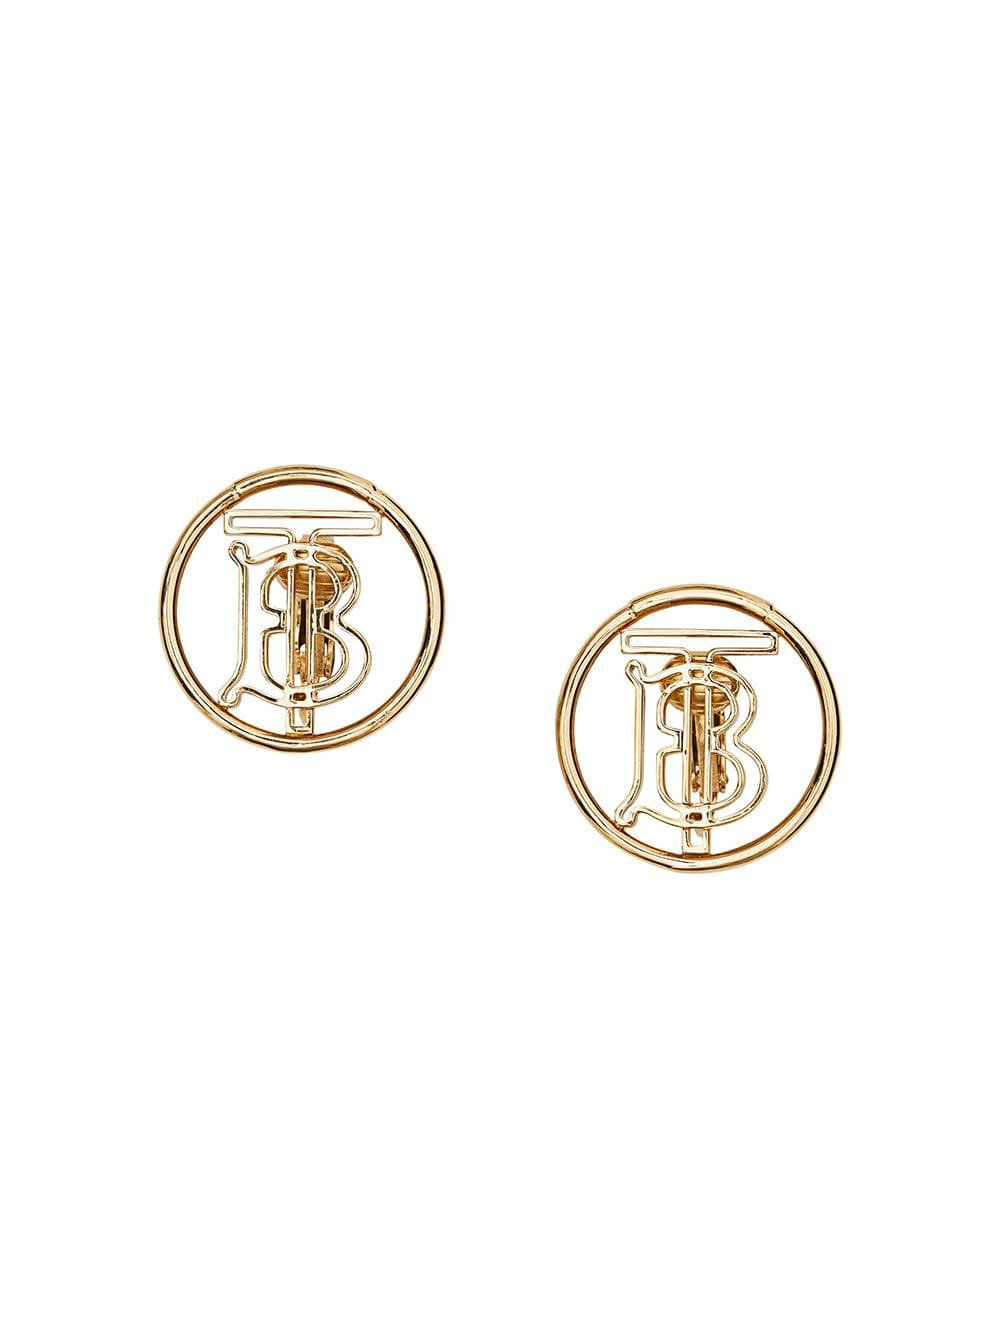 Gold Burberry Gold-plated Monogram Motif Earrings | Farfetch.com